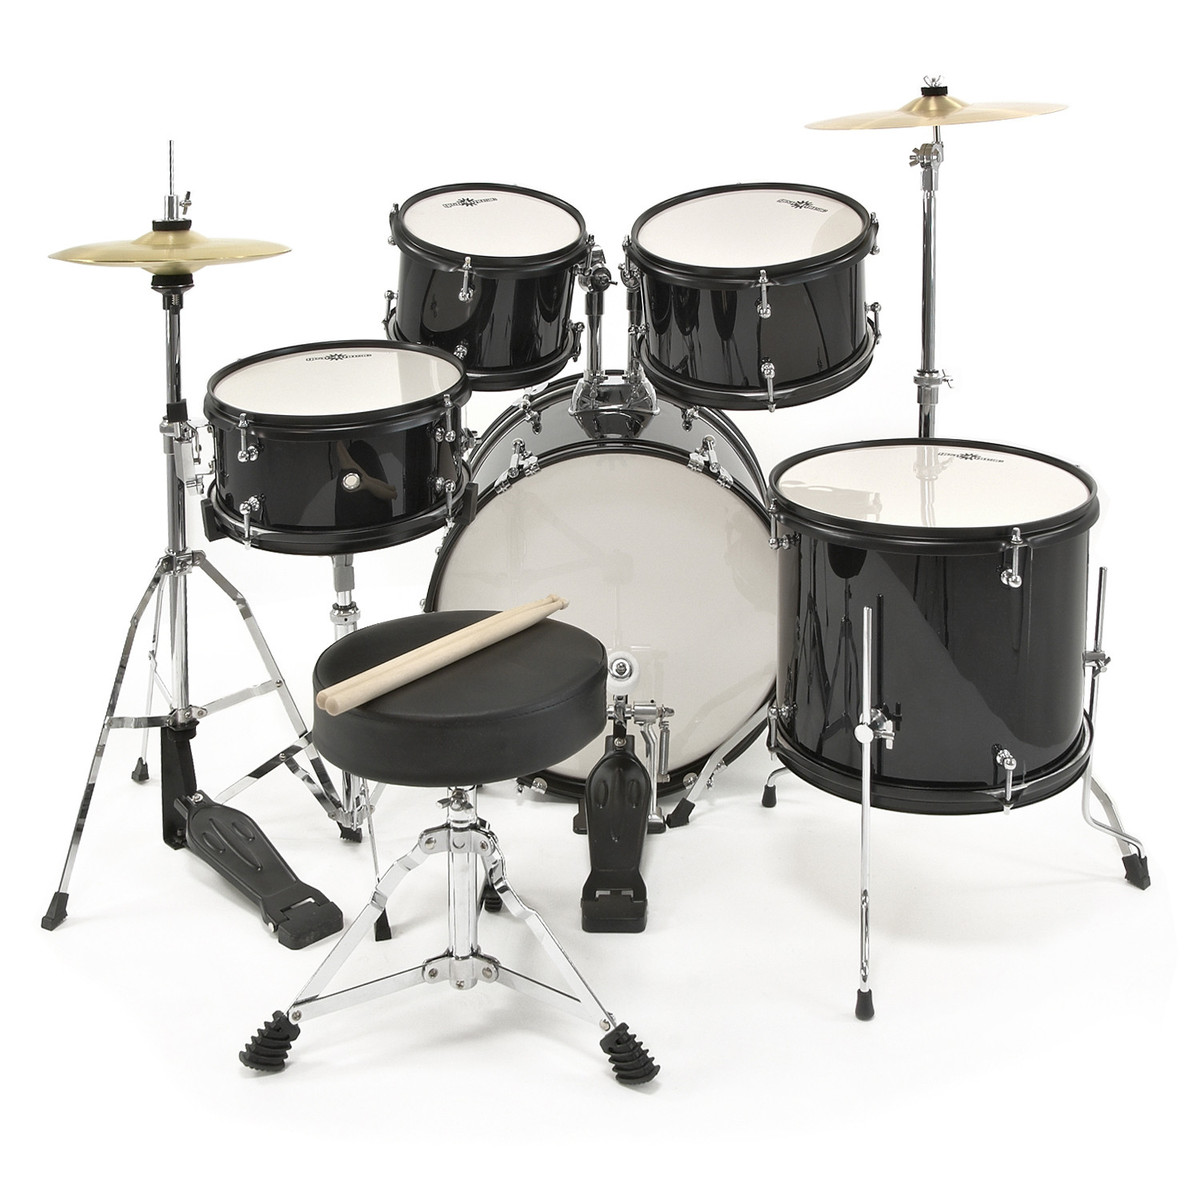 Junior 5 Piece Drum Kit By Gear4music Black Box Opened